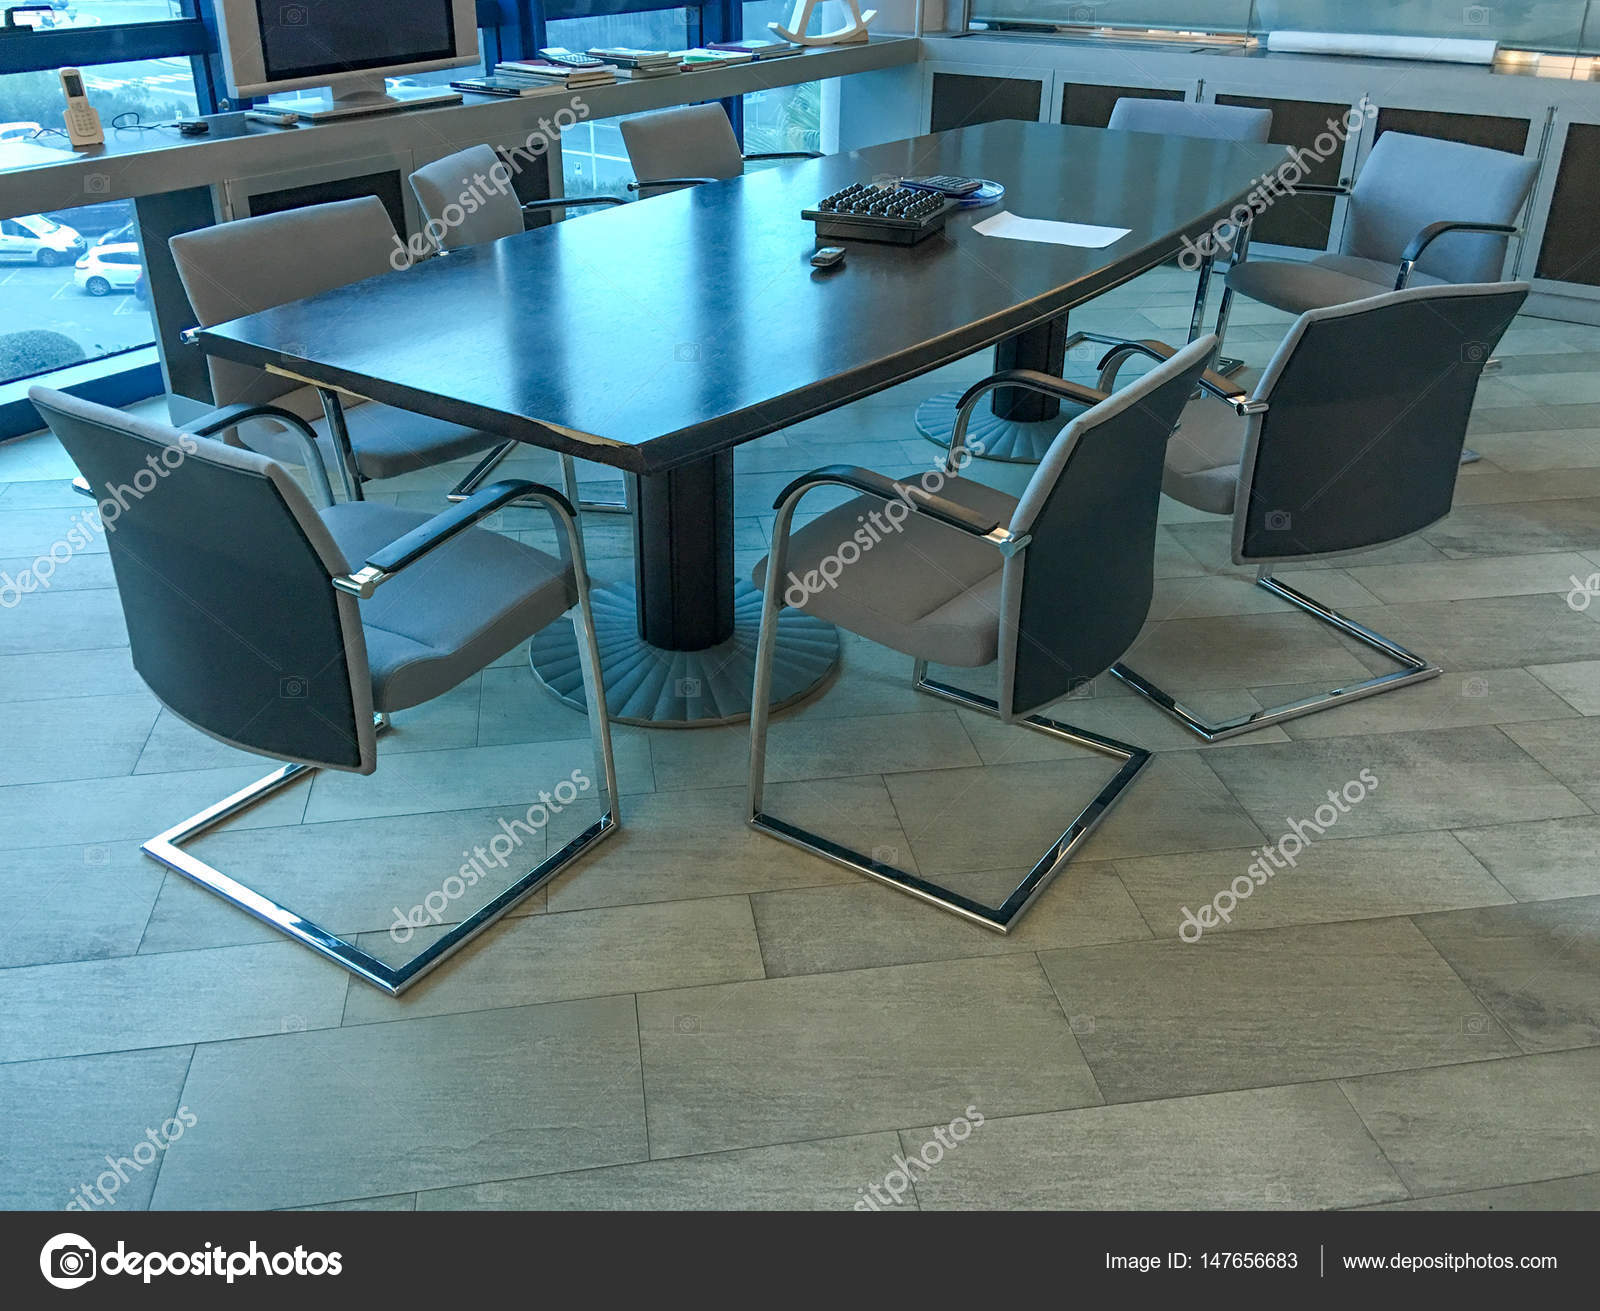 Meeting Room Tables Chairs Near A Meeting Room Table Stock Photo Jovannig 147656683